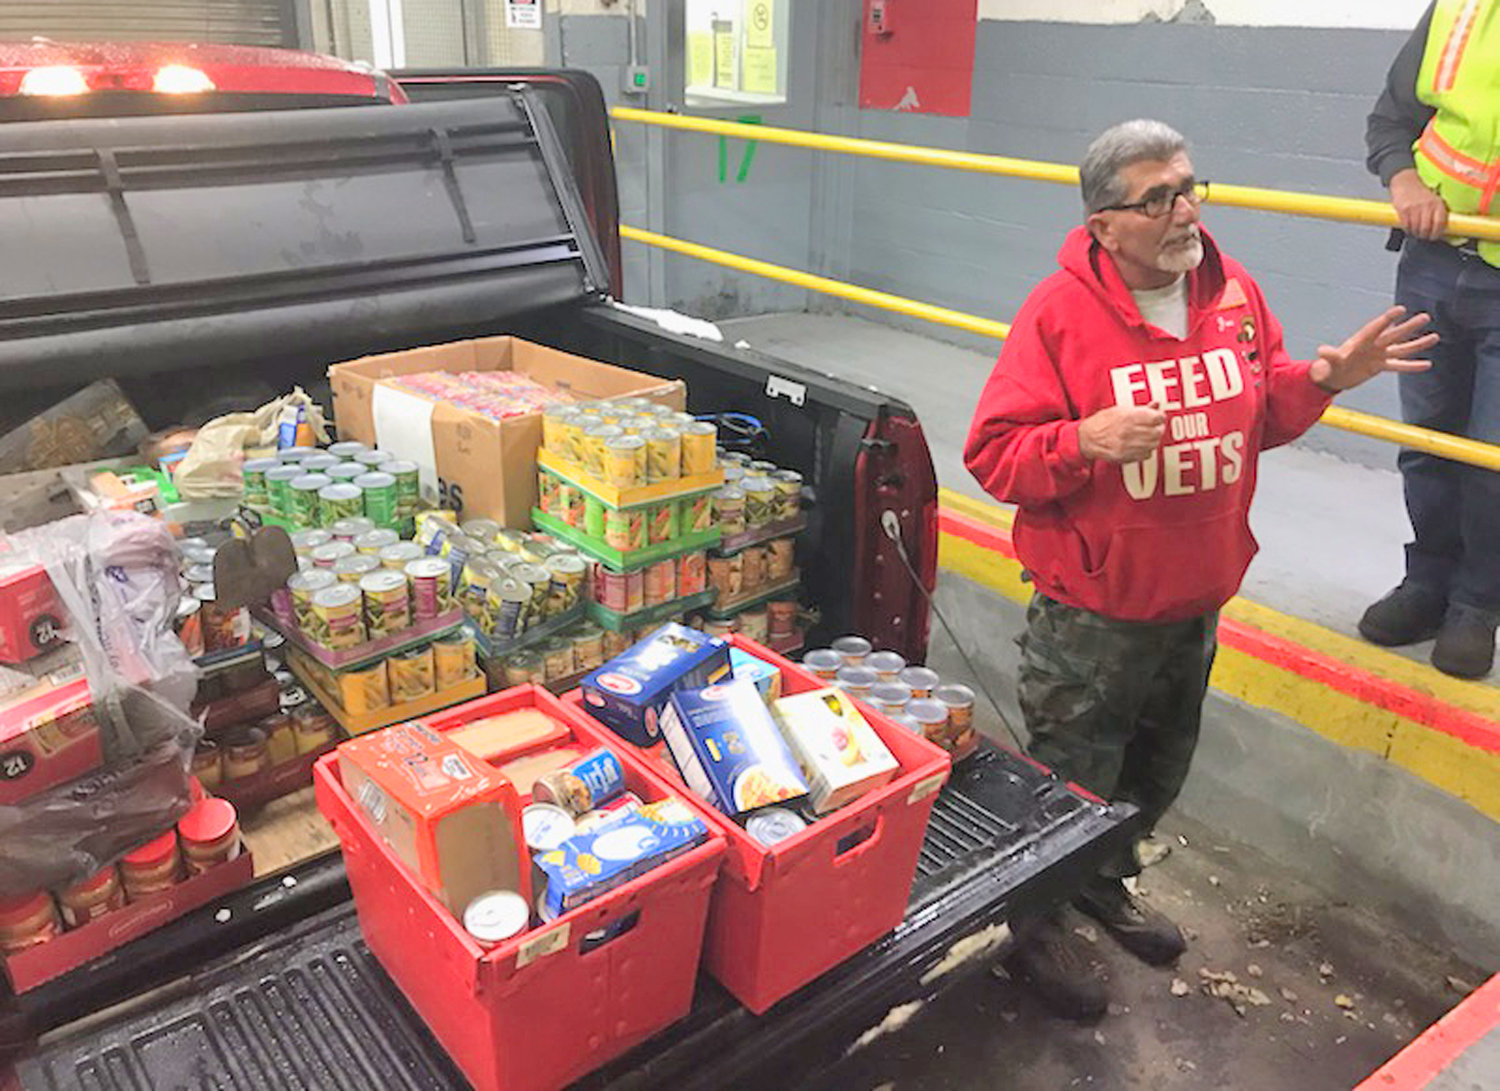 COLLECTED FOR VETS — Joe Ancona, director of the Utica Feed Our Vets pantry, stands by some of the food items collected for his organization through a drive at Worthington Industries' Rome facility.